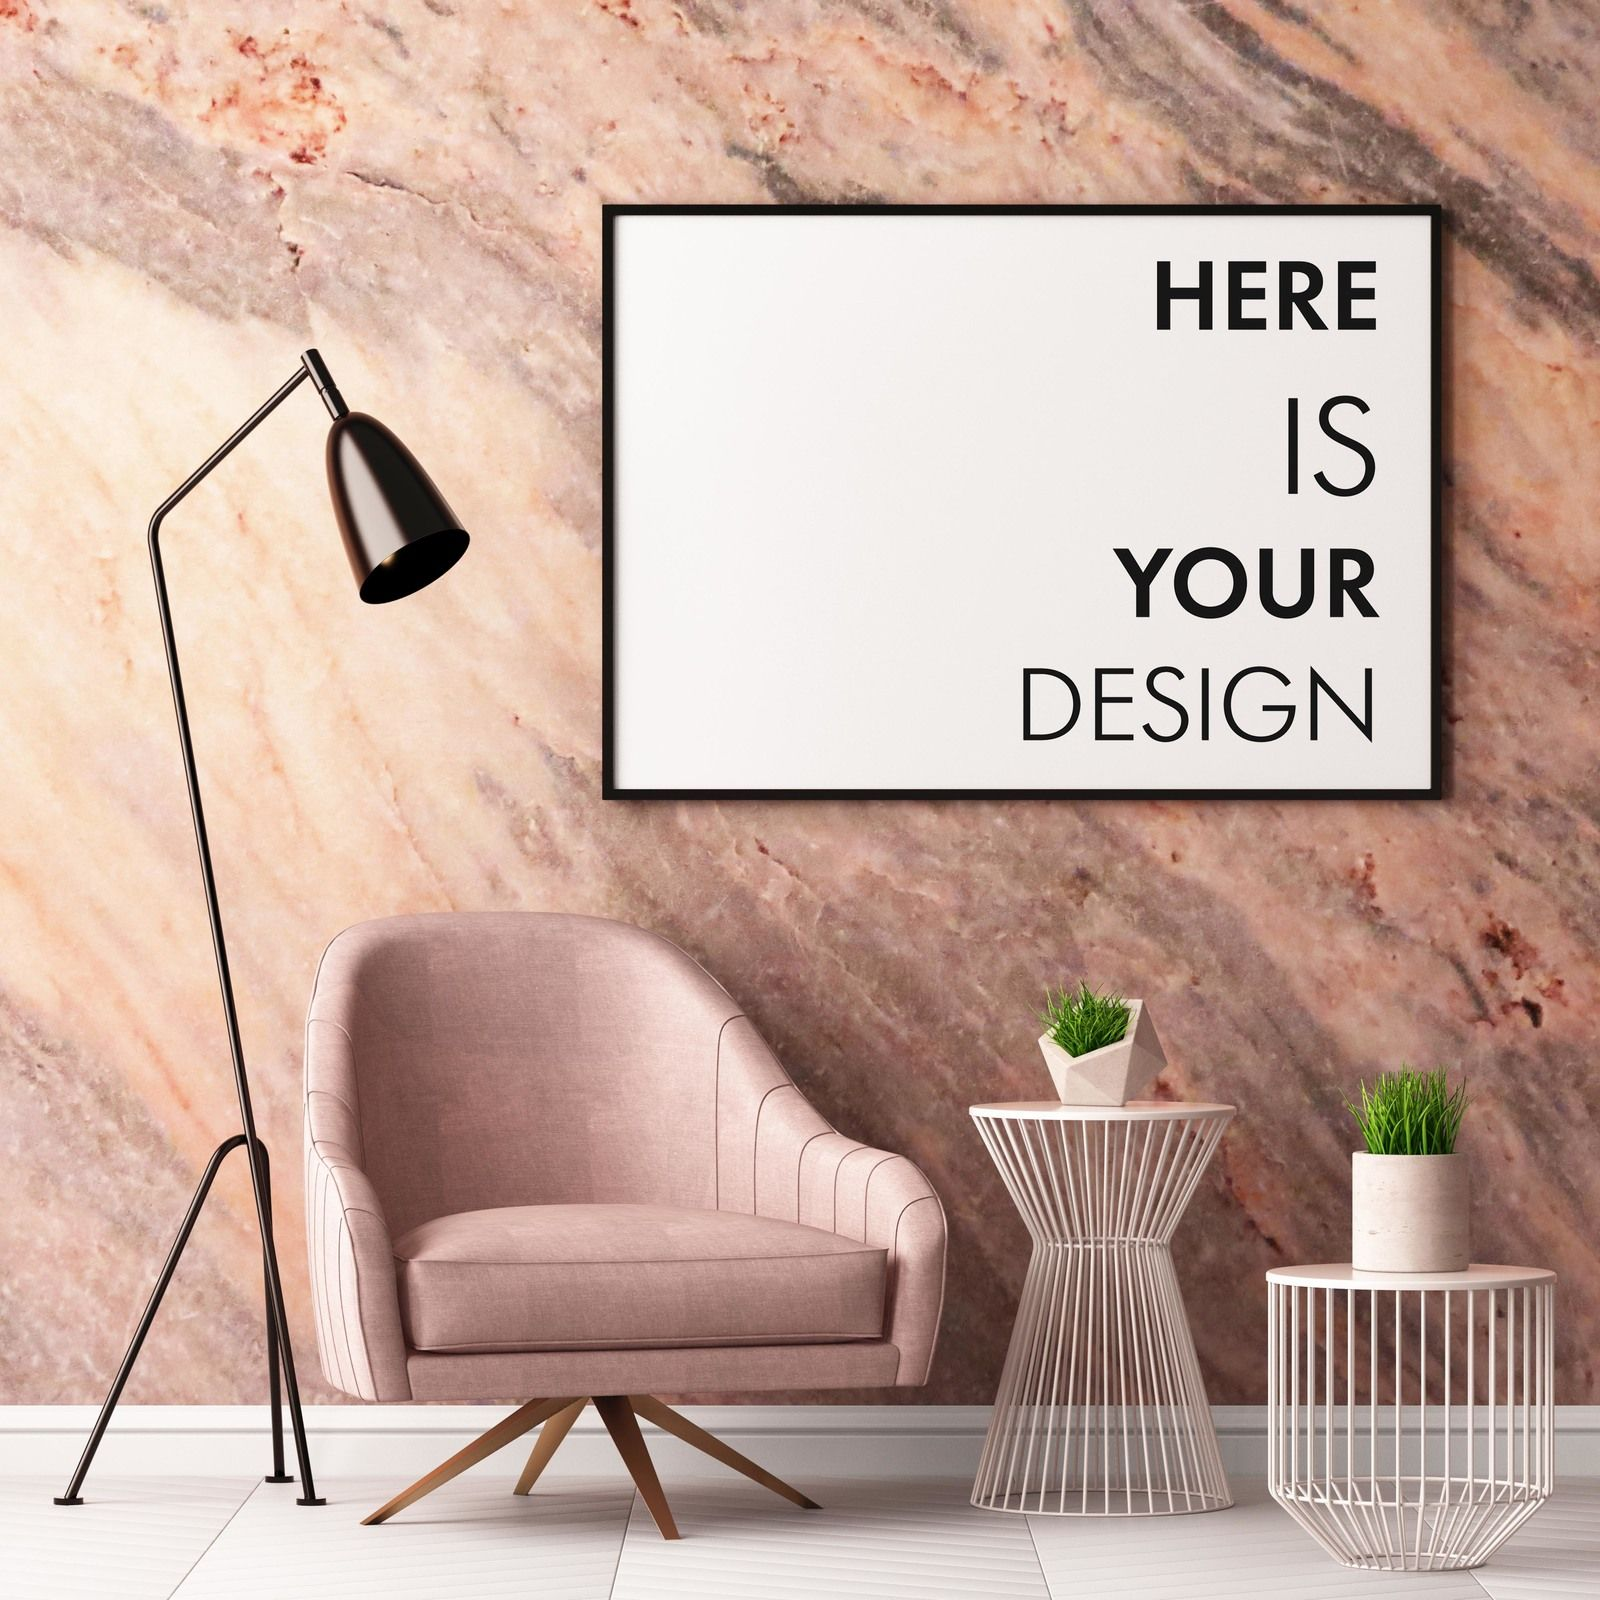 6 poster design photo mockups - 6 Mockup Posters In The Interior